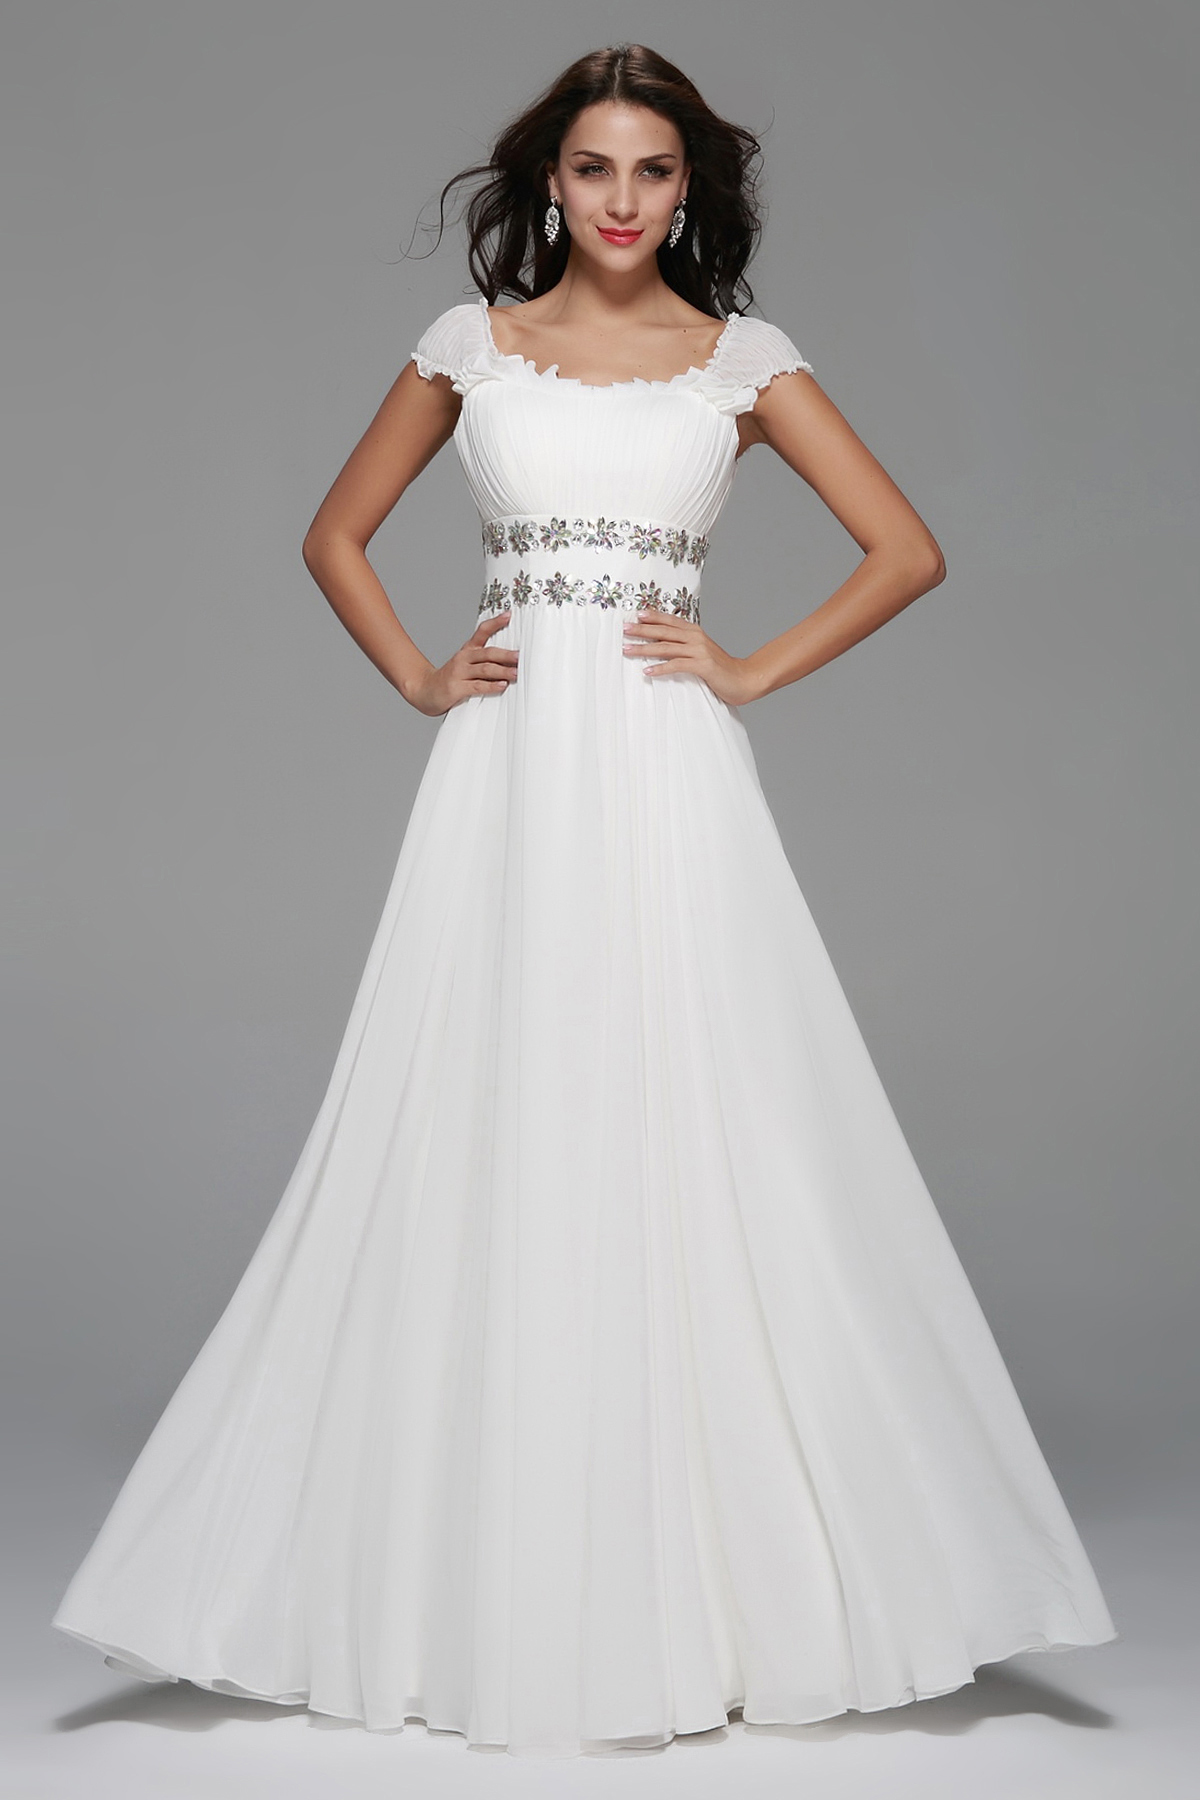 Empire Cap Sleeve Beading Long A-line White Chiffon Prom Dress